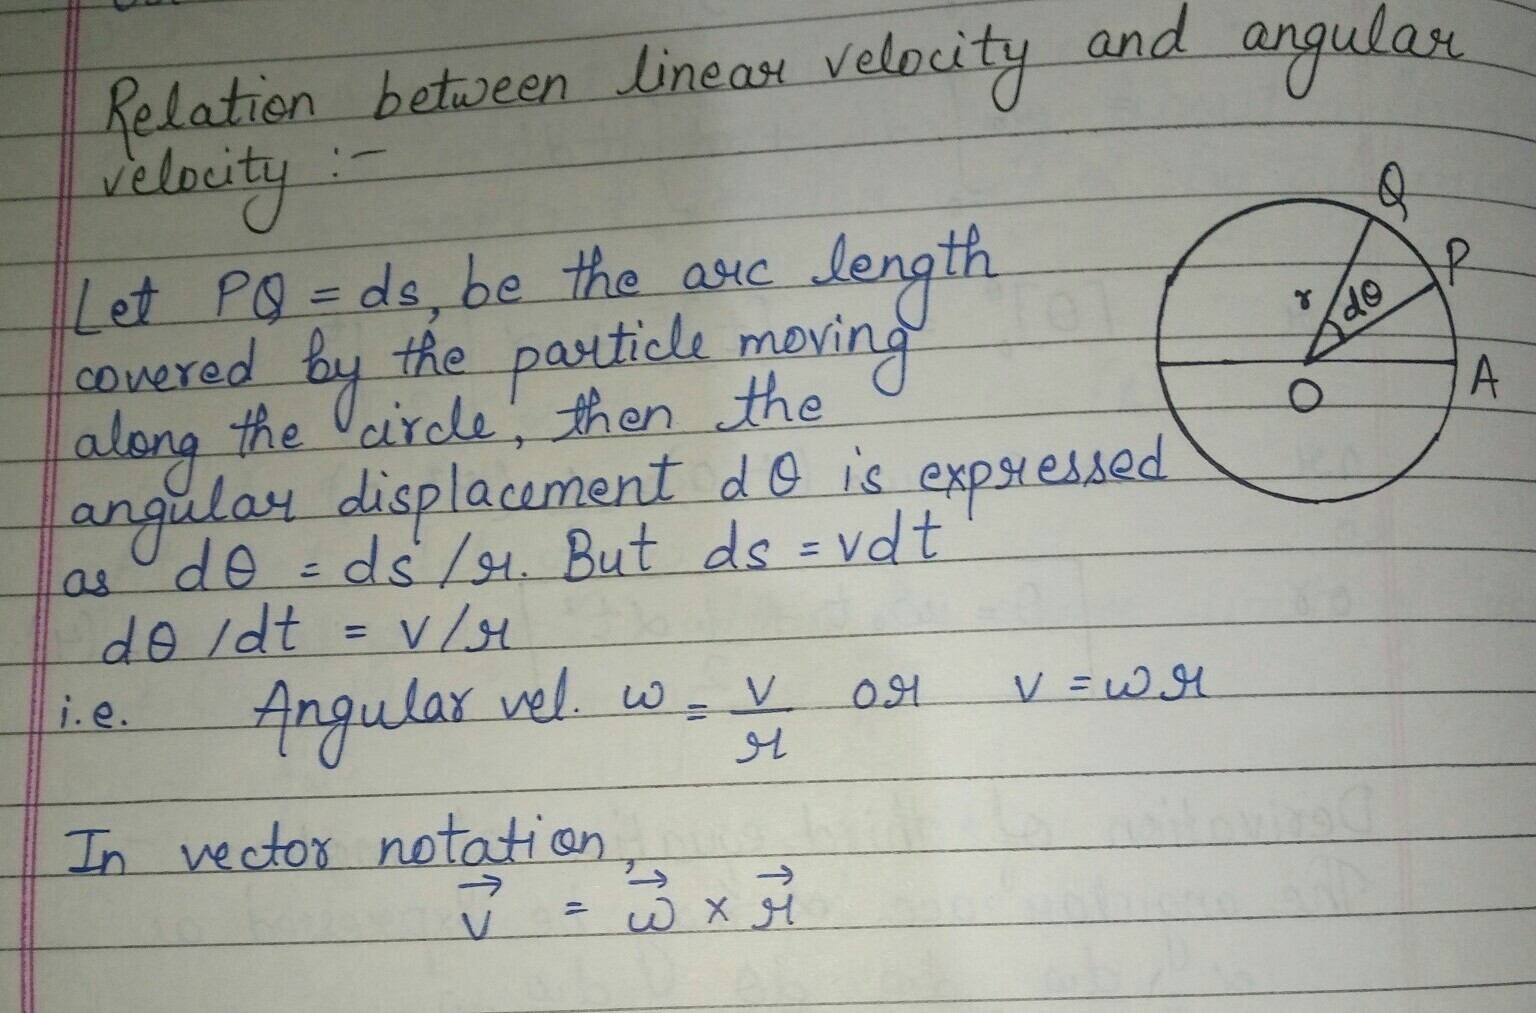 Derive Relation Between Linear Velocity And Angular